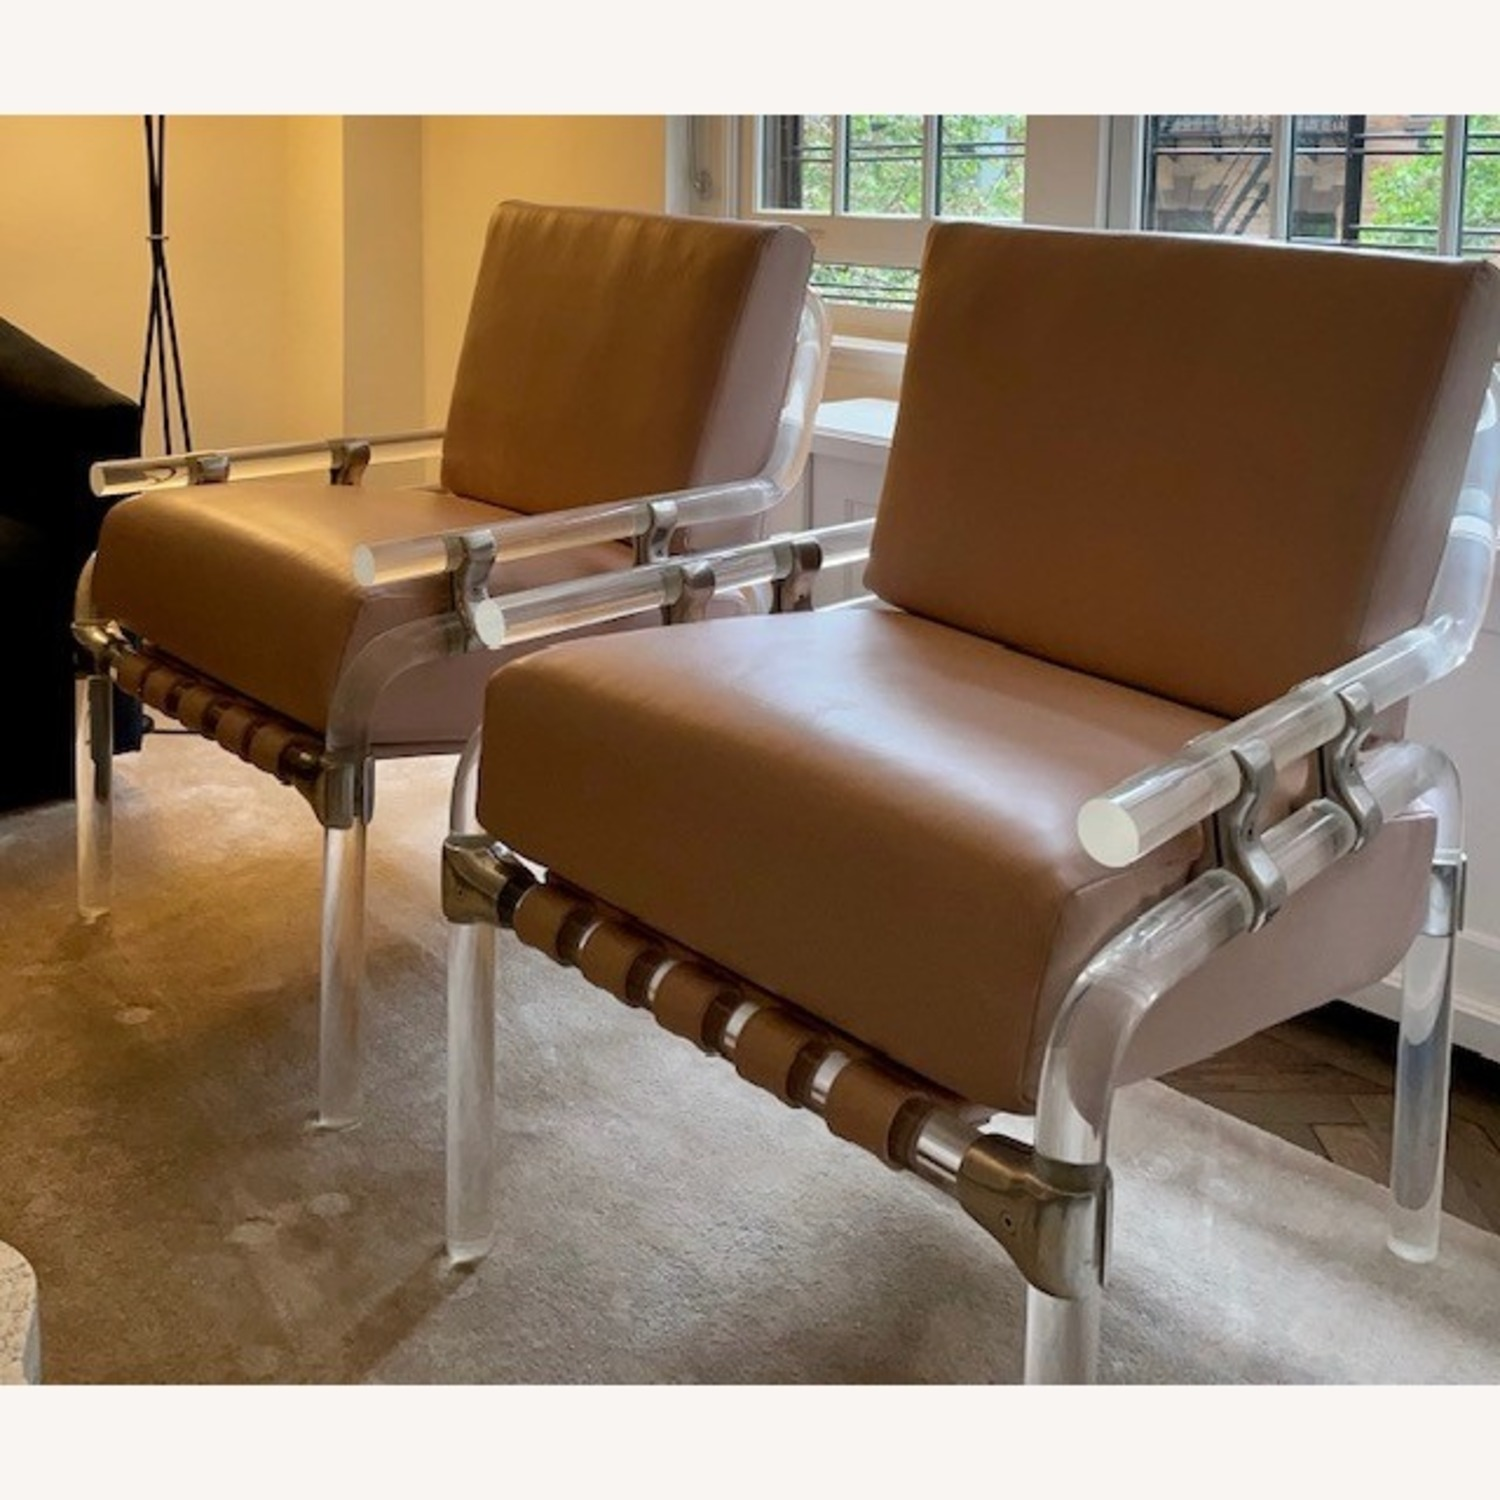 Pair of Pink Leather Jeff Messerschmidt Chairs - image-3